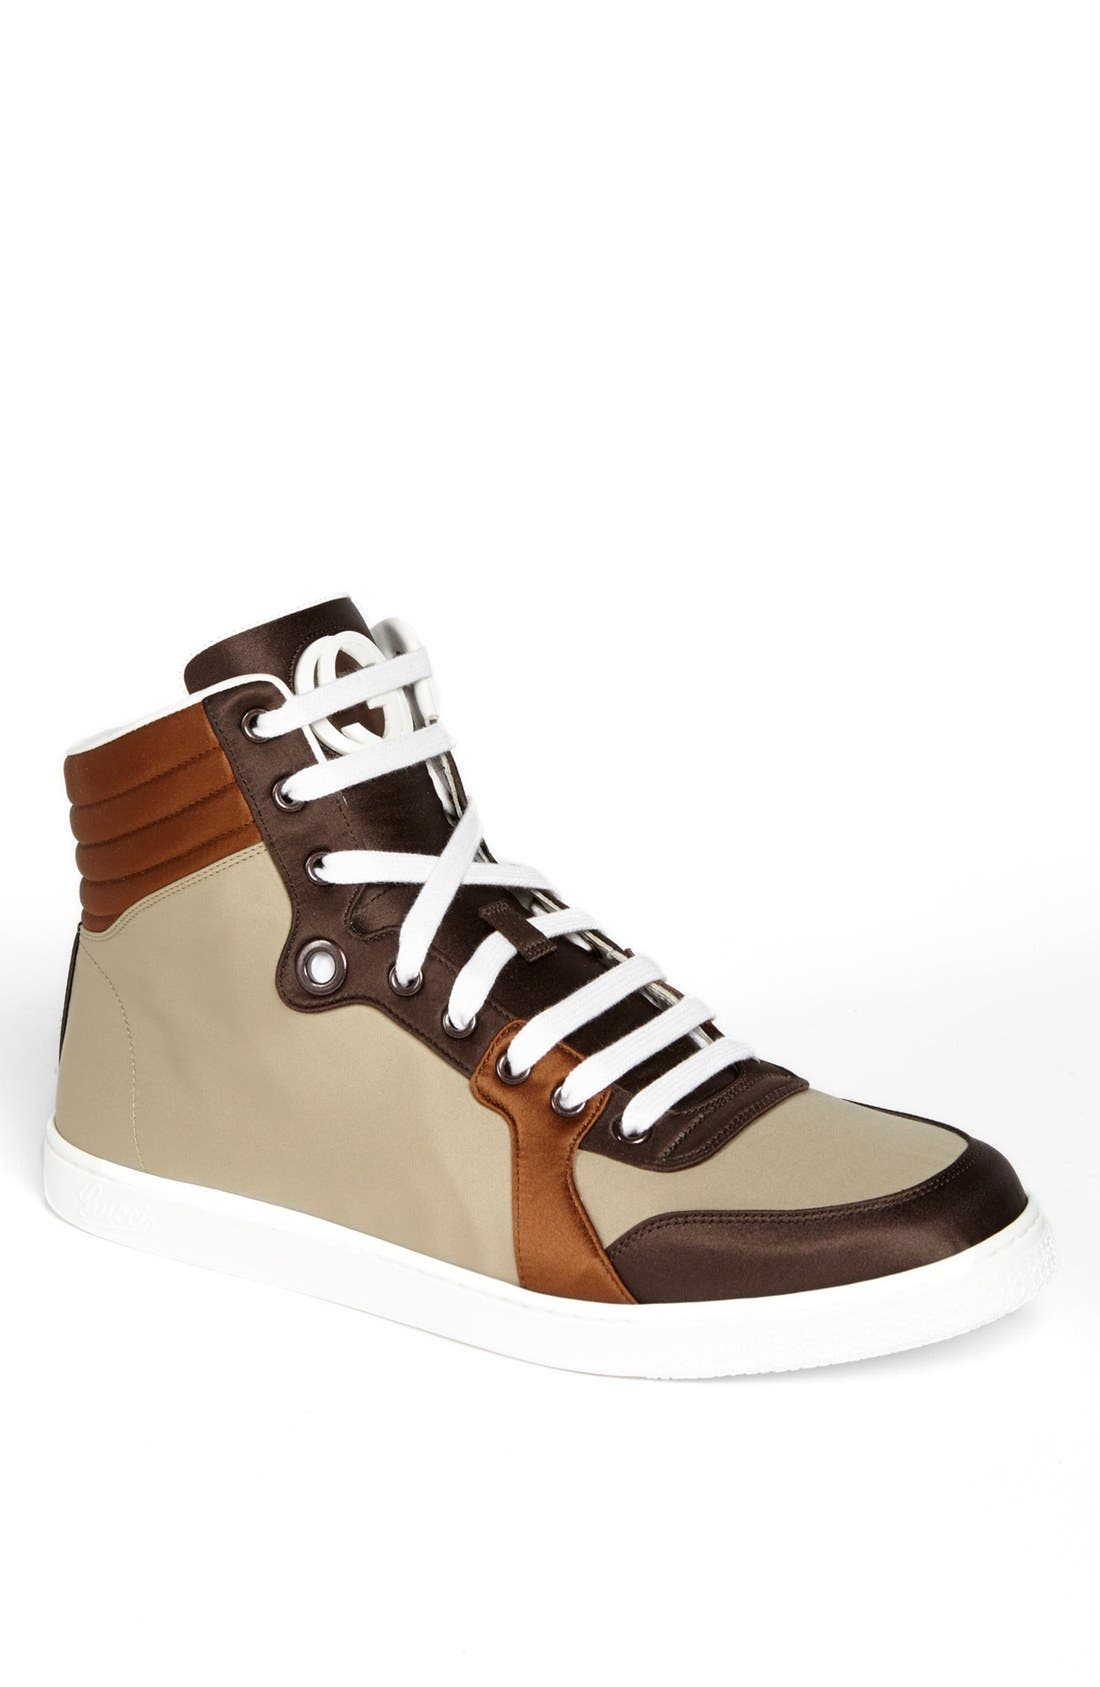 Alternate Image 1 Selected - Gucci 'Coda' Satin High Top Sneaker